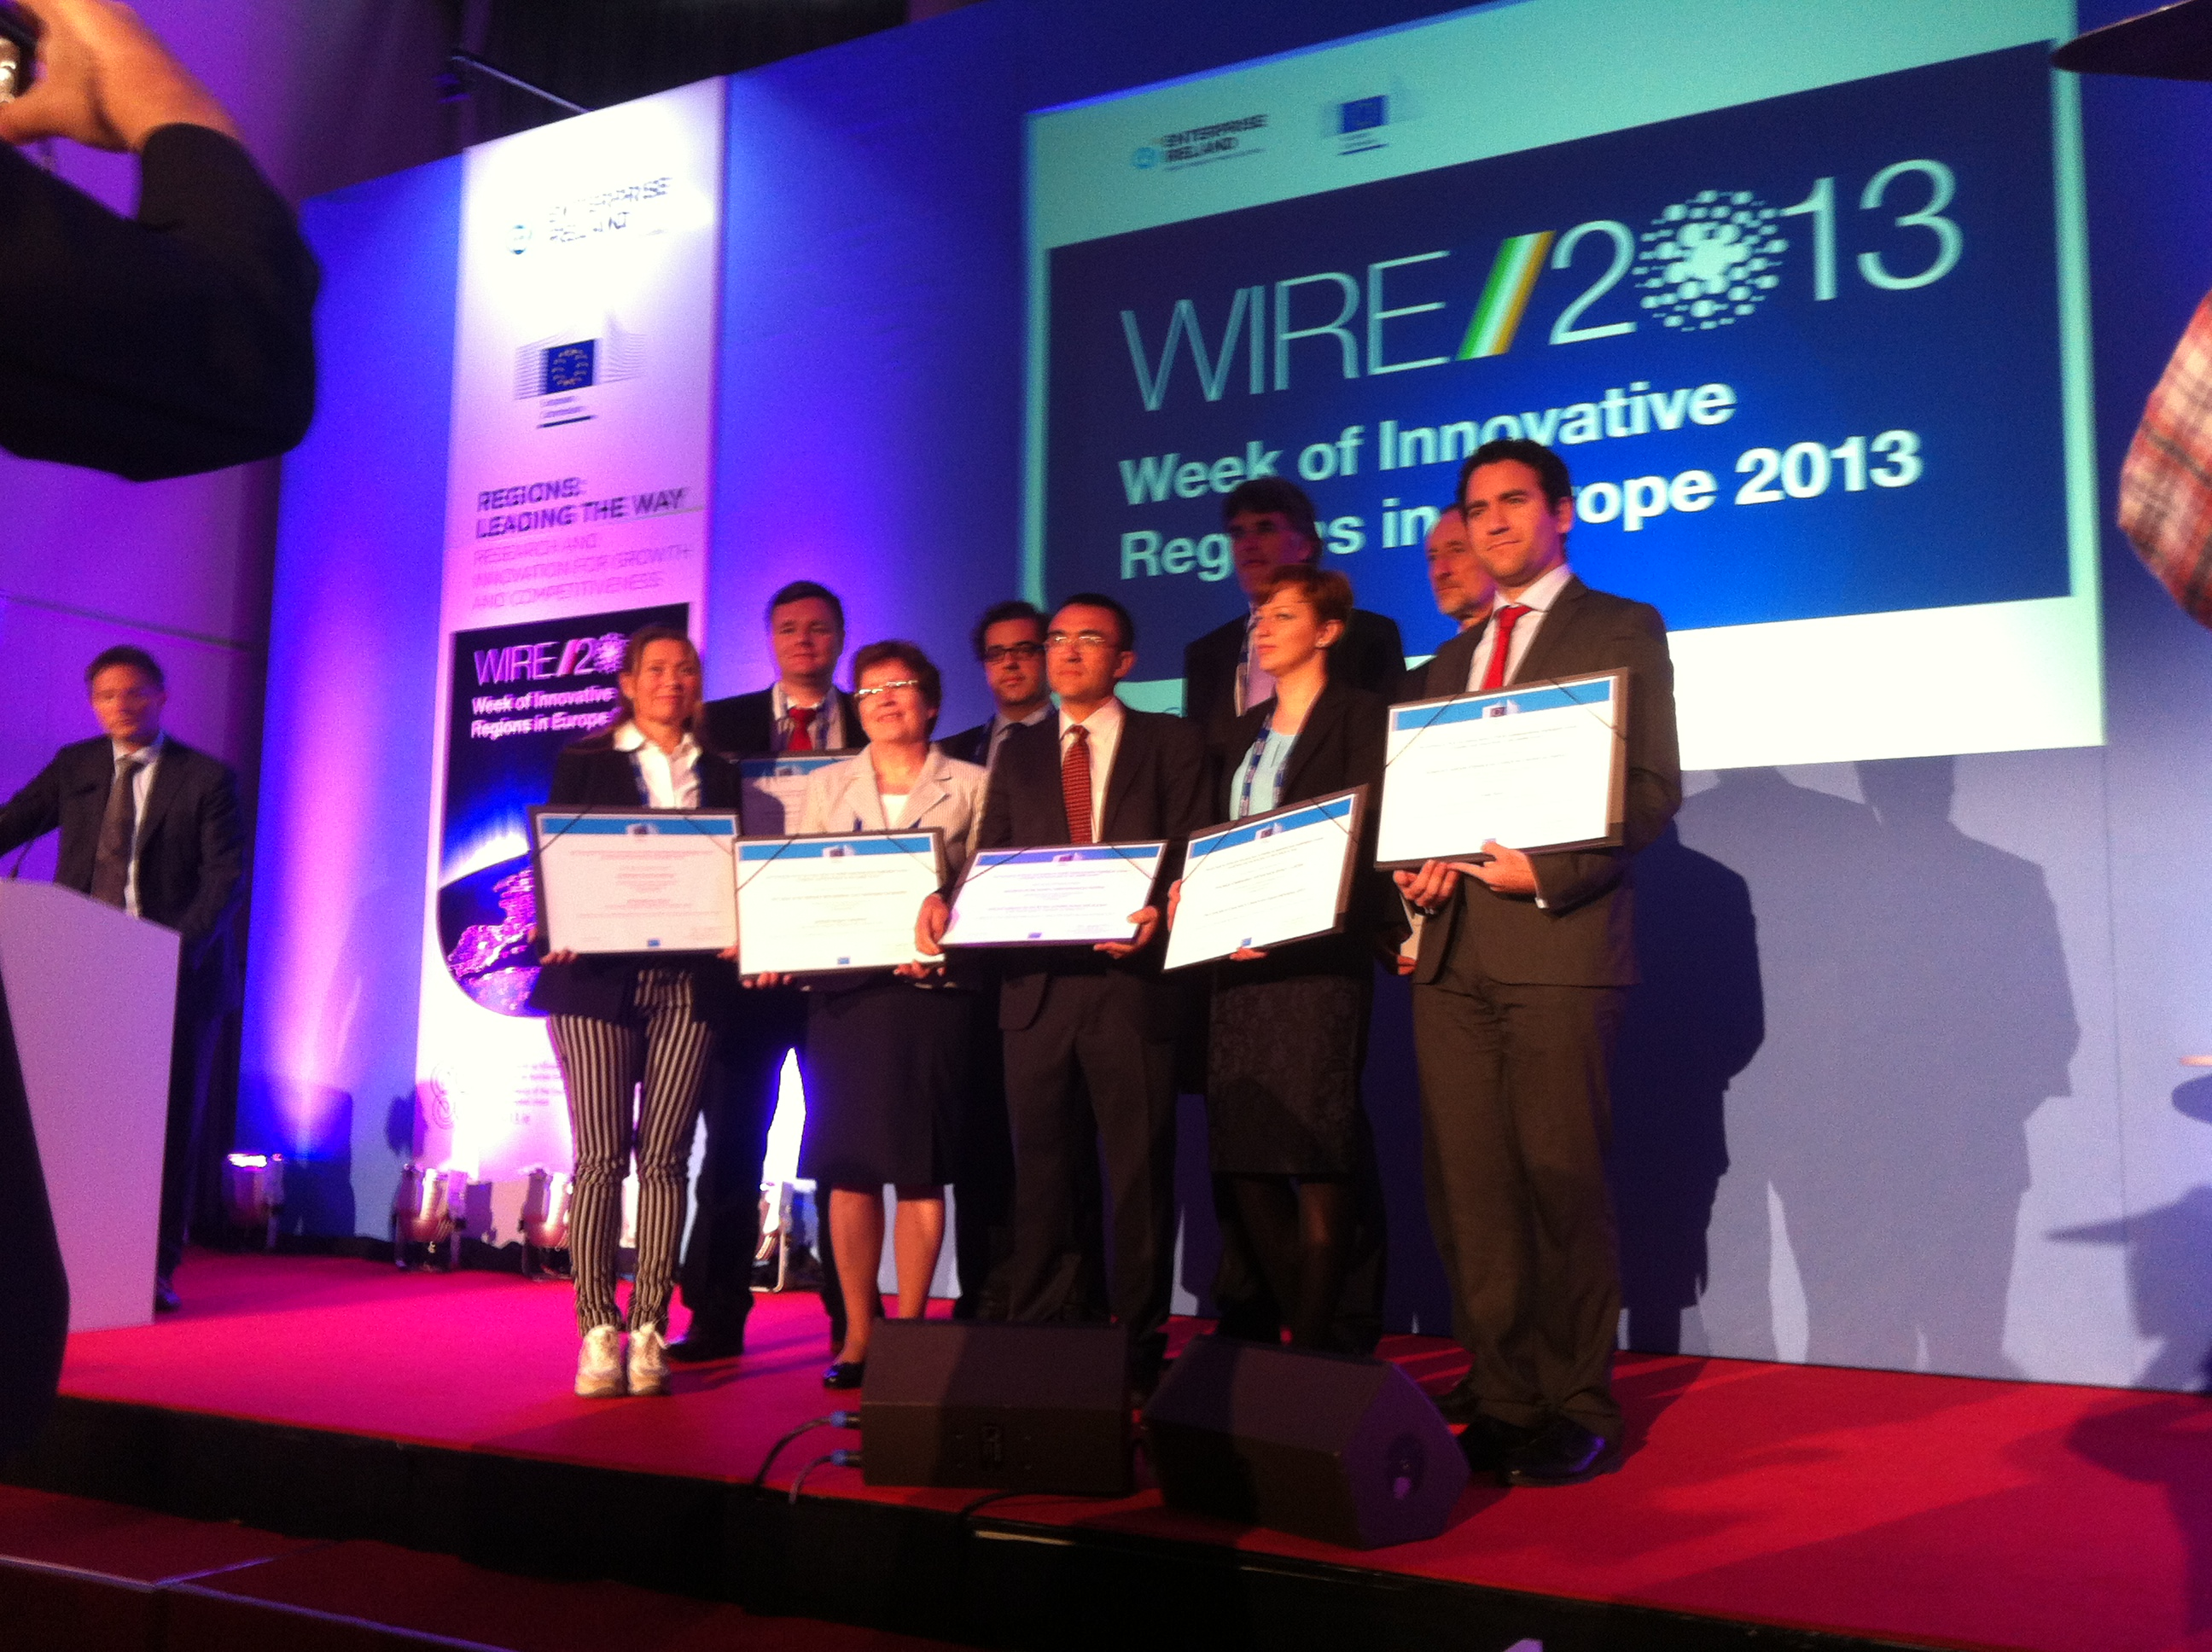 HRI received the main prize in the EU's innovation competition in 2013.